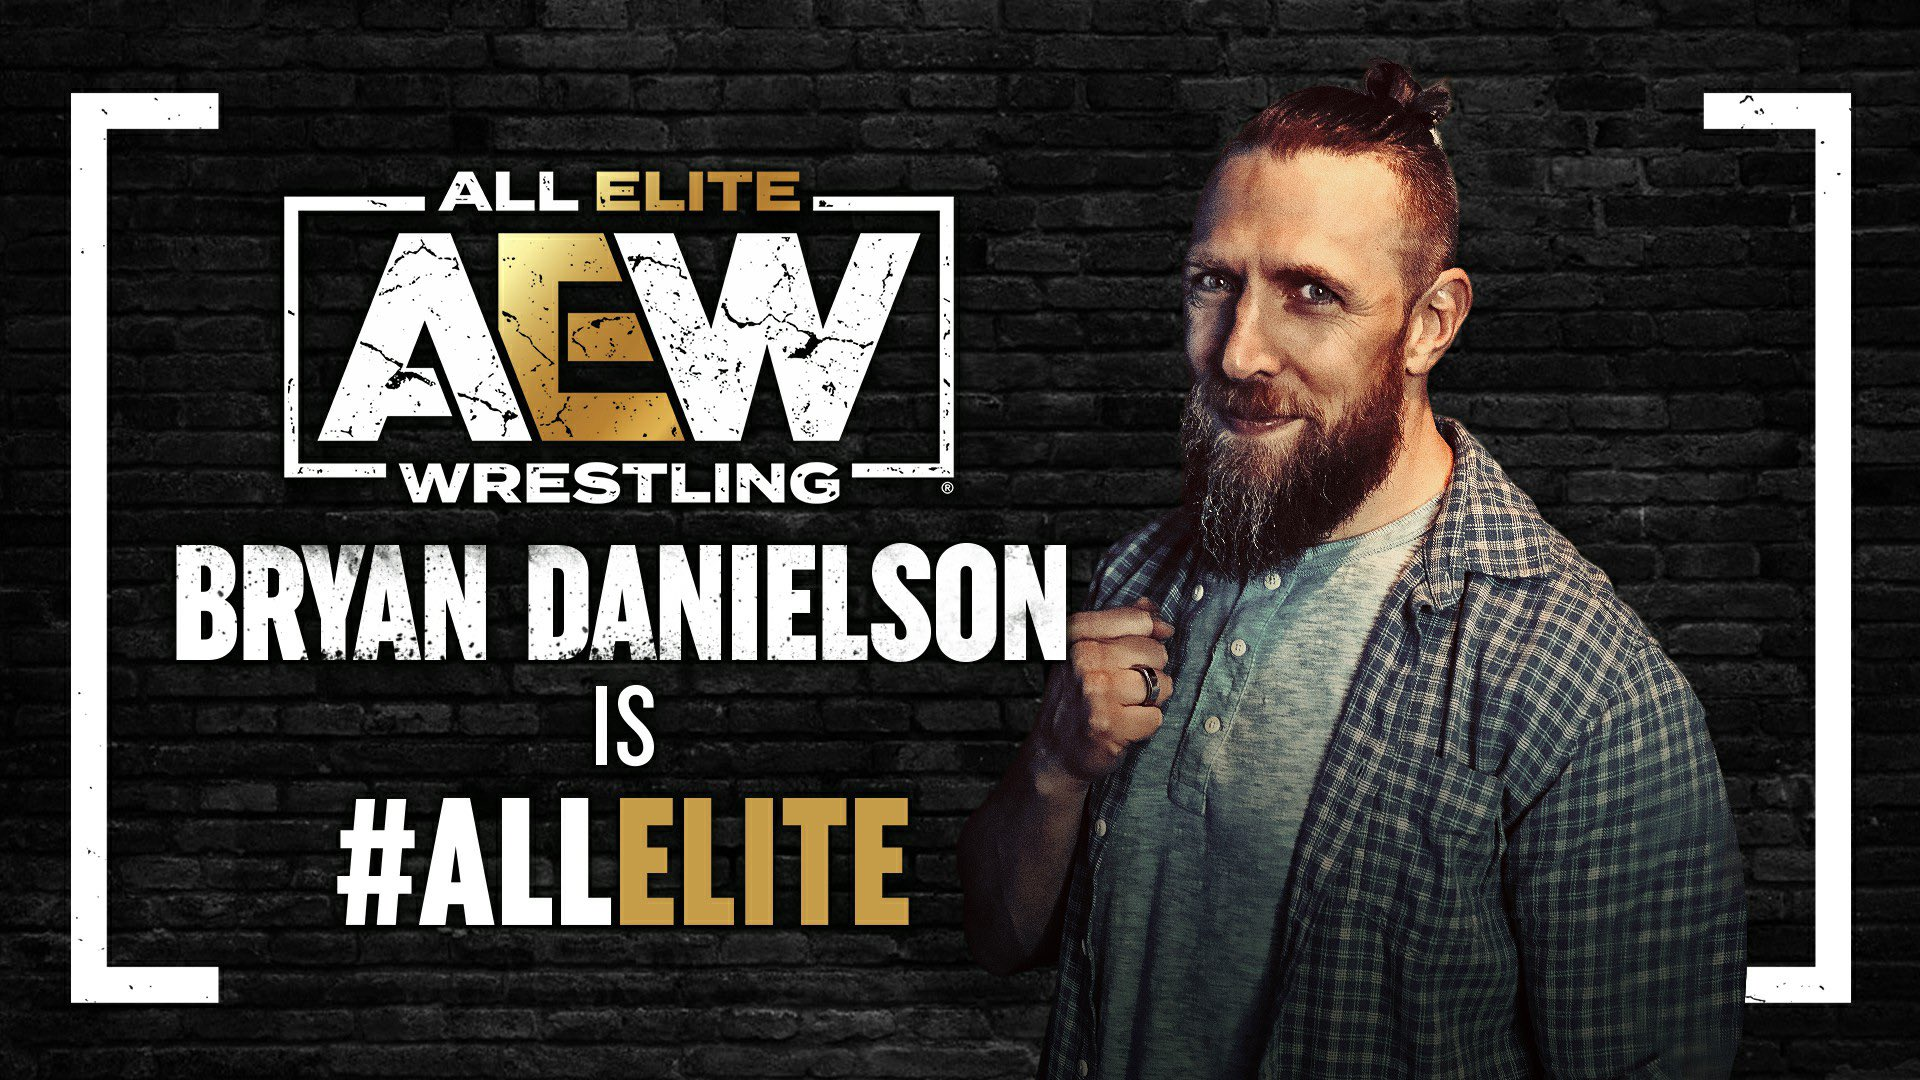 Bryan Danielson signs with All Elite Wrestling